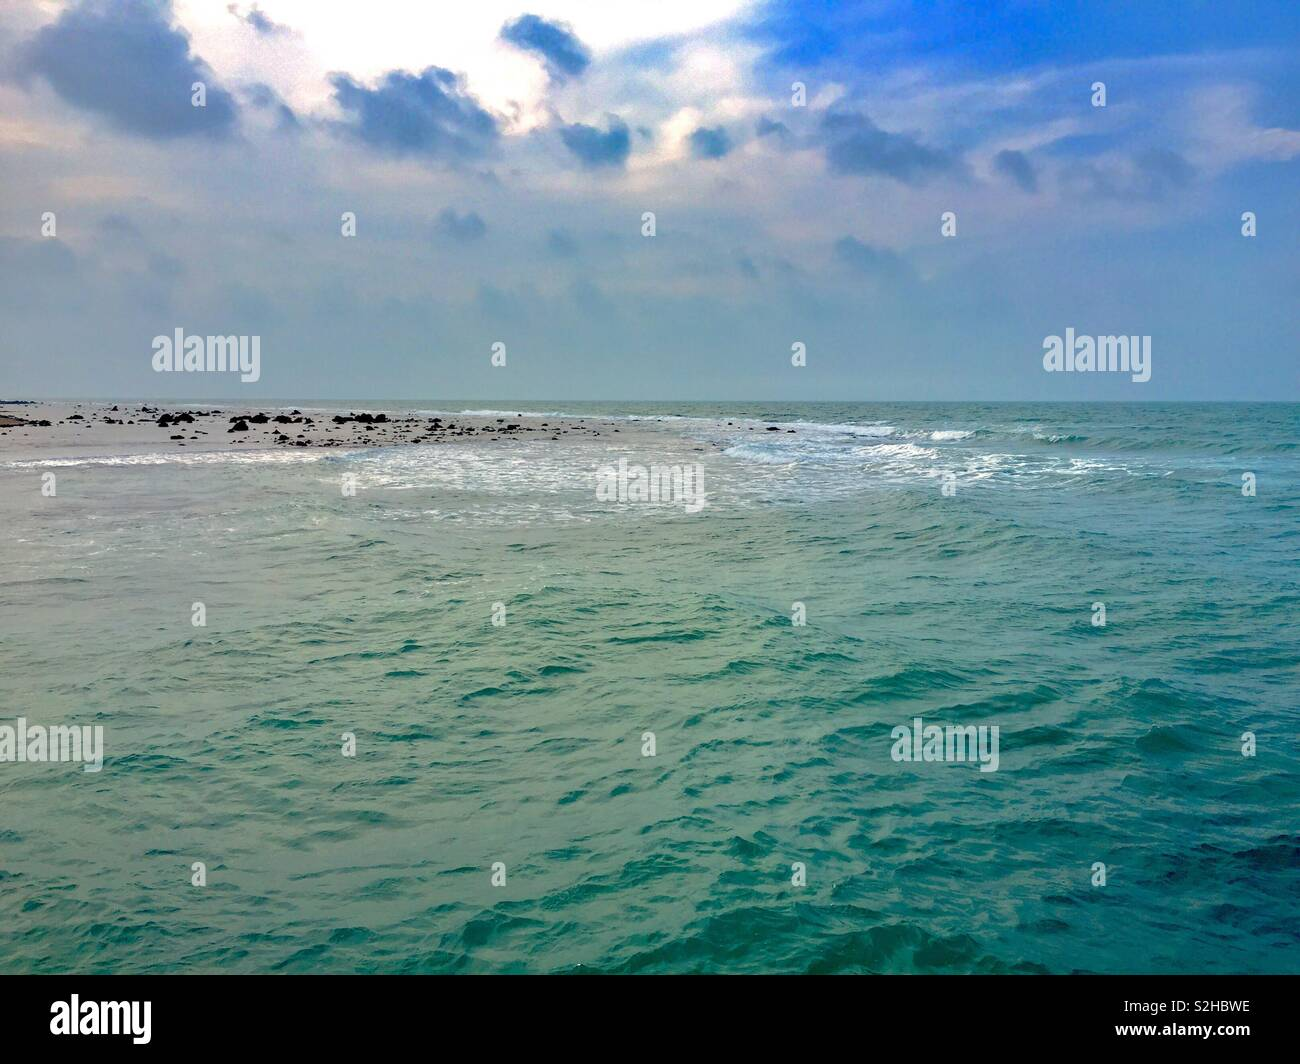 Nothern sea, srilanka - Stock Image